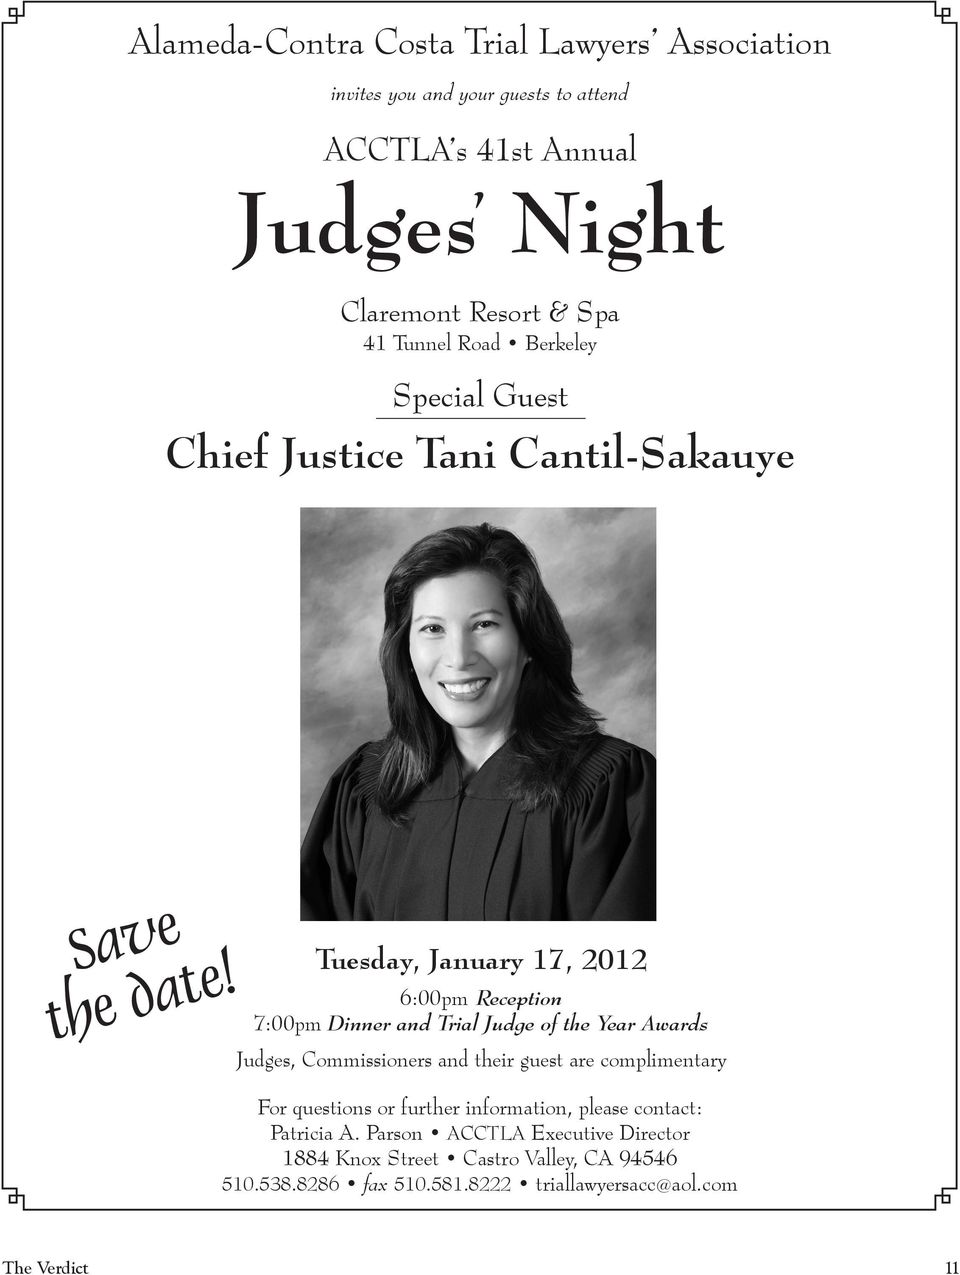 Tuesday, January 17, 2012 6:00pm Reception 7:00pm Dinner and Trial Judge of the Year Awards Judges, Commissioners and their guest are